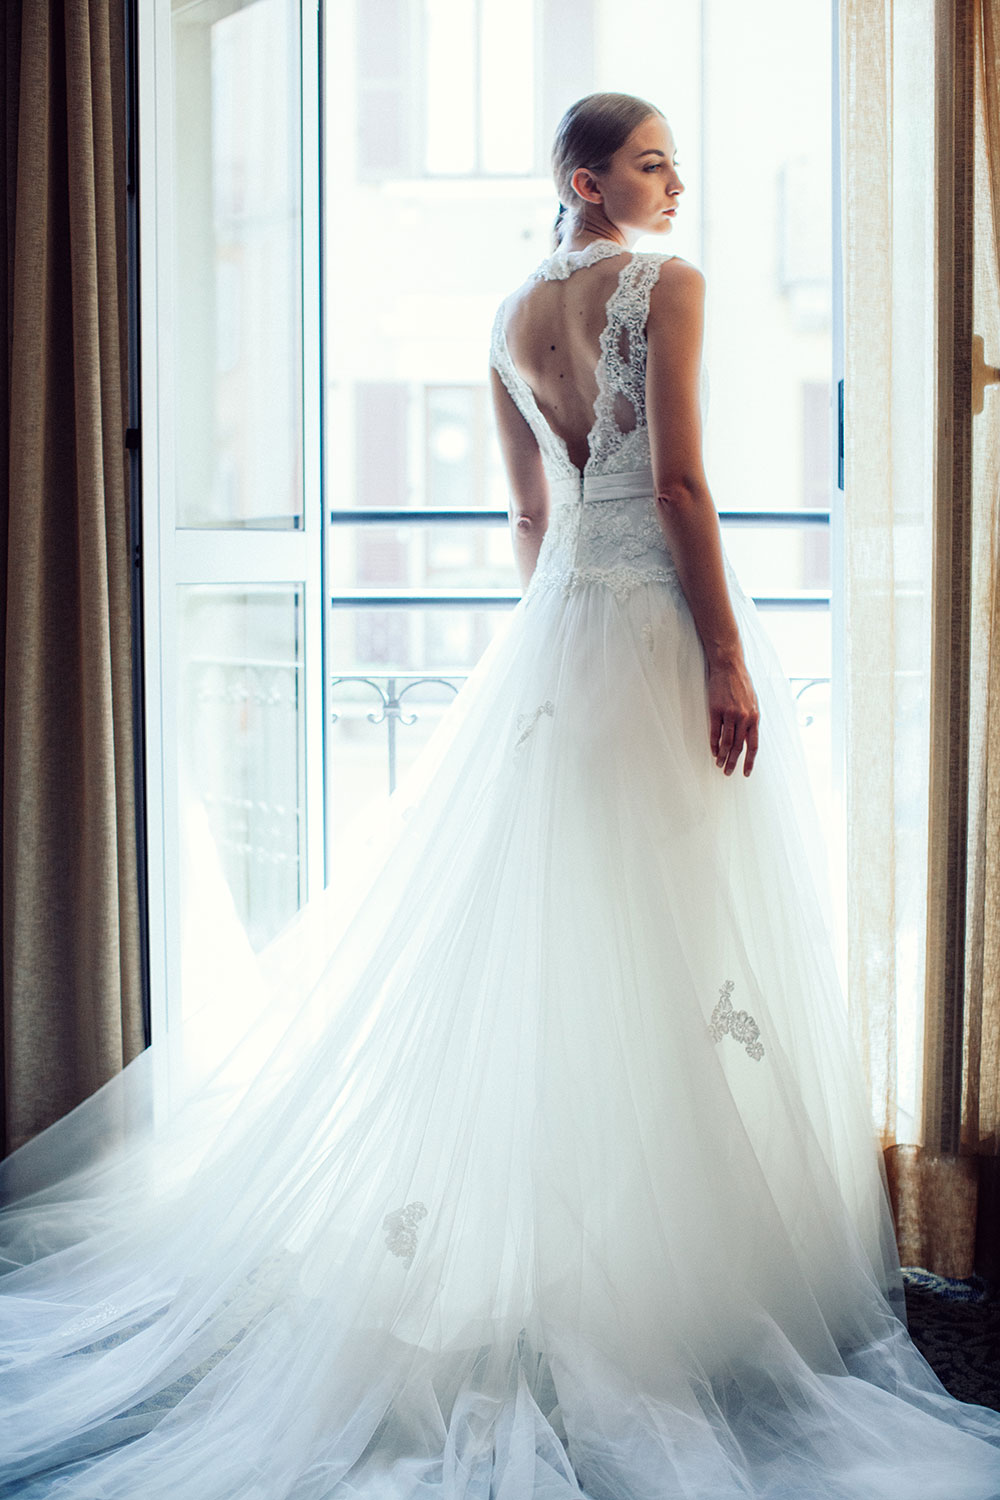 Lusan Mandongus 2018 Bridal Collection. www.theweddingnotebook.com